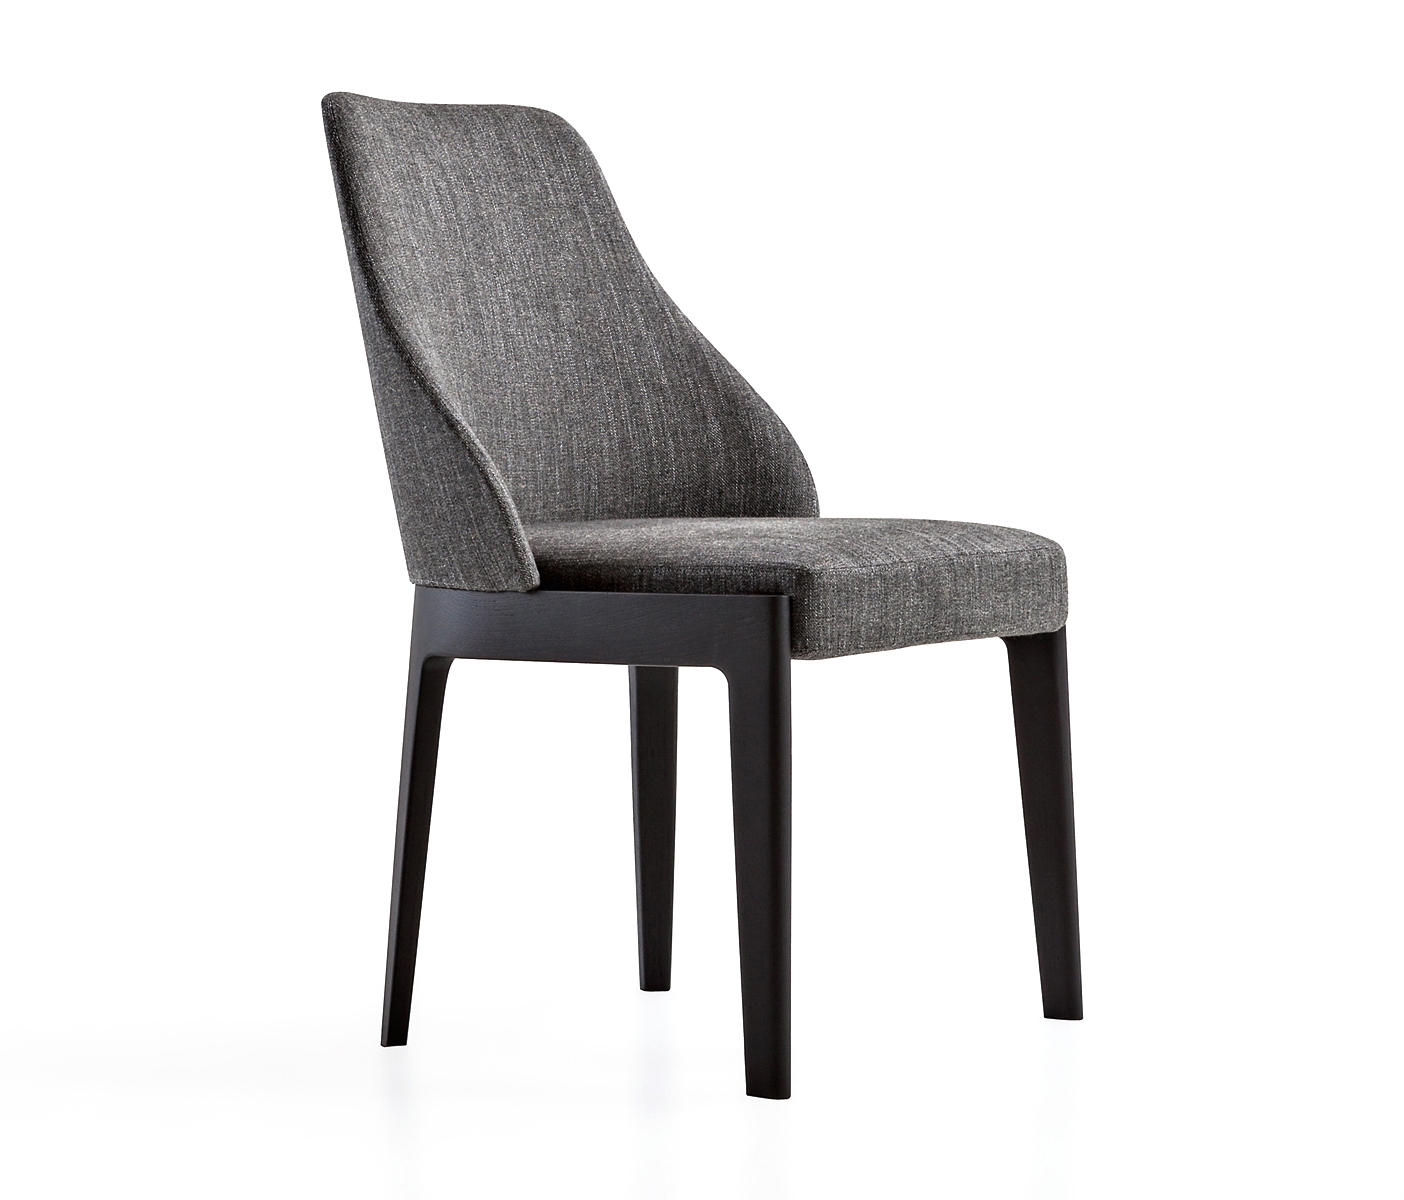 CHELSEA CHAIR - Chairs from Molteni & C | Architonic